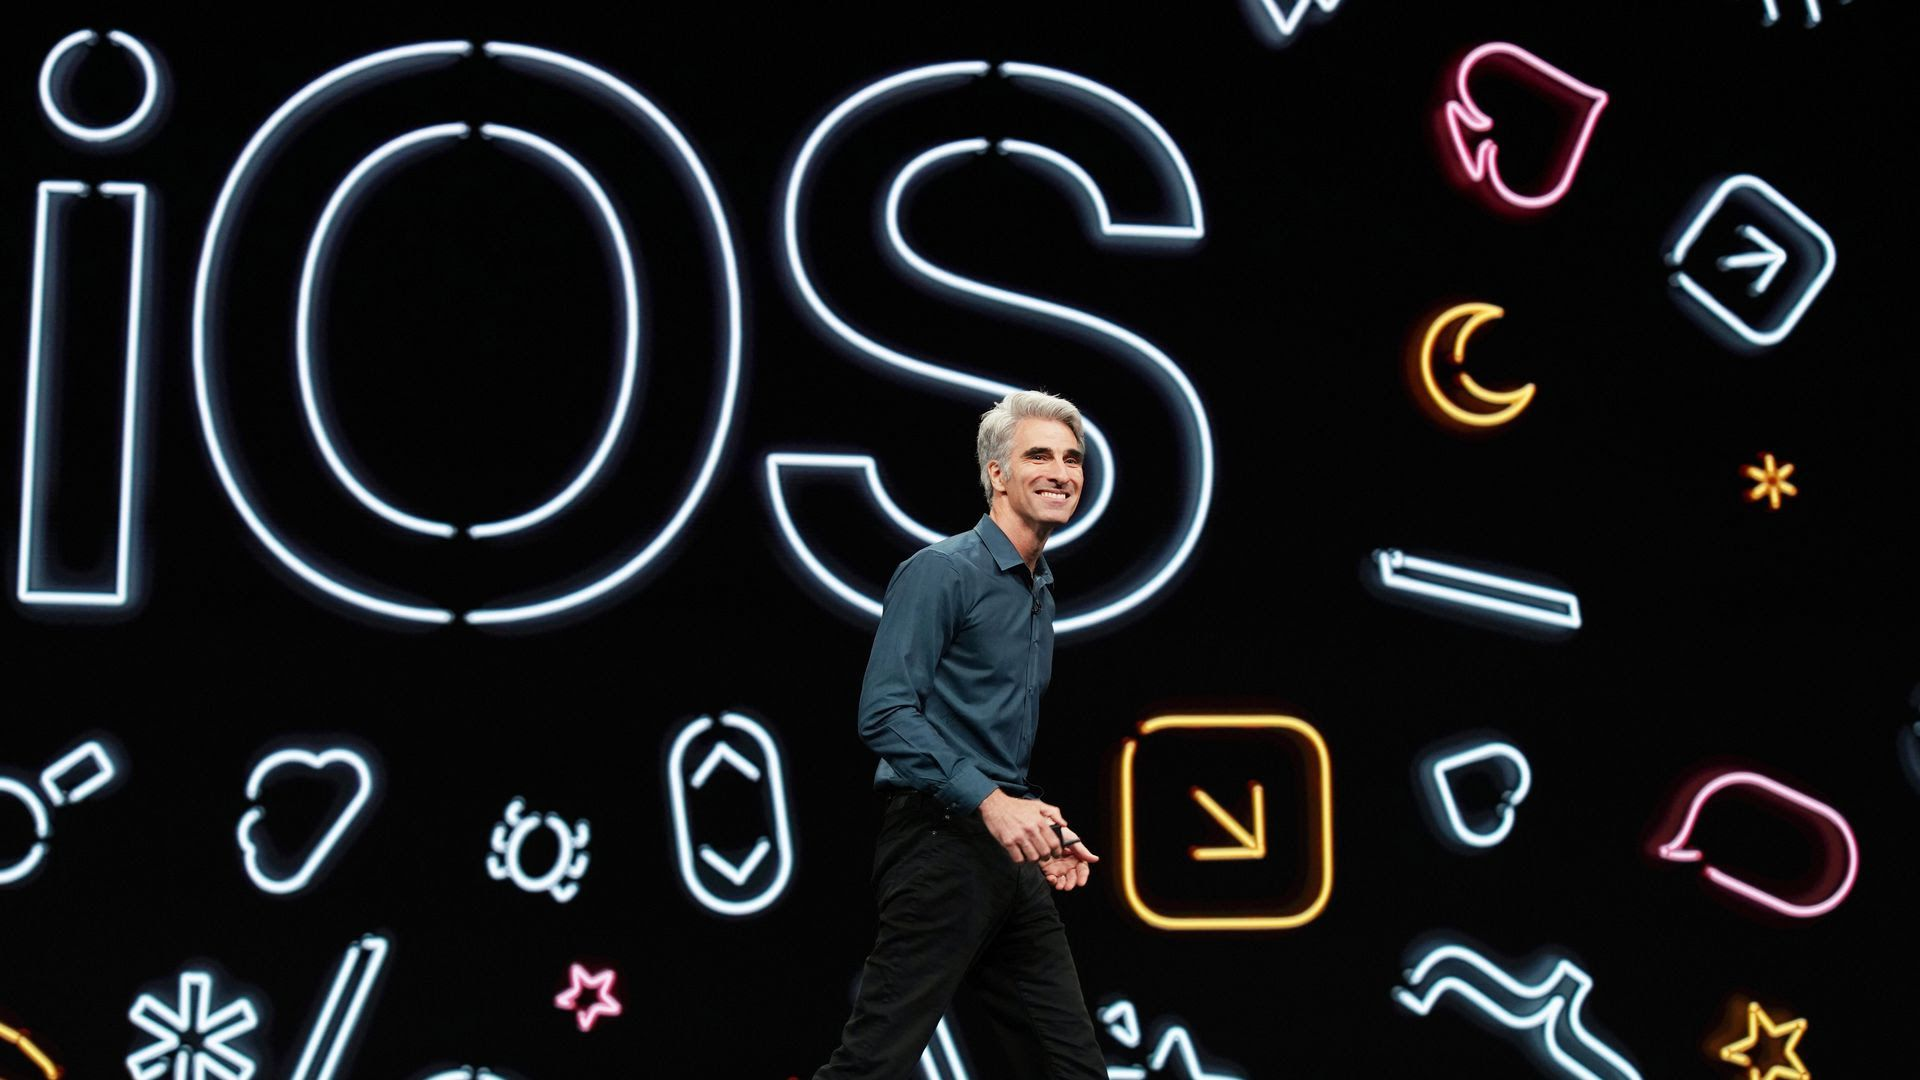 Craig Federighi unveiling iOS 13 at WWDC 2019. Photo: Apple